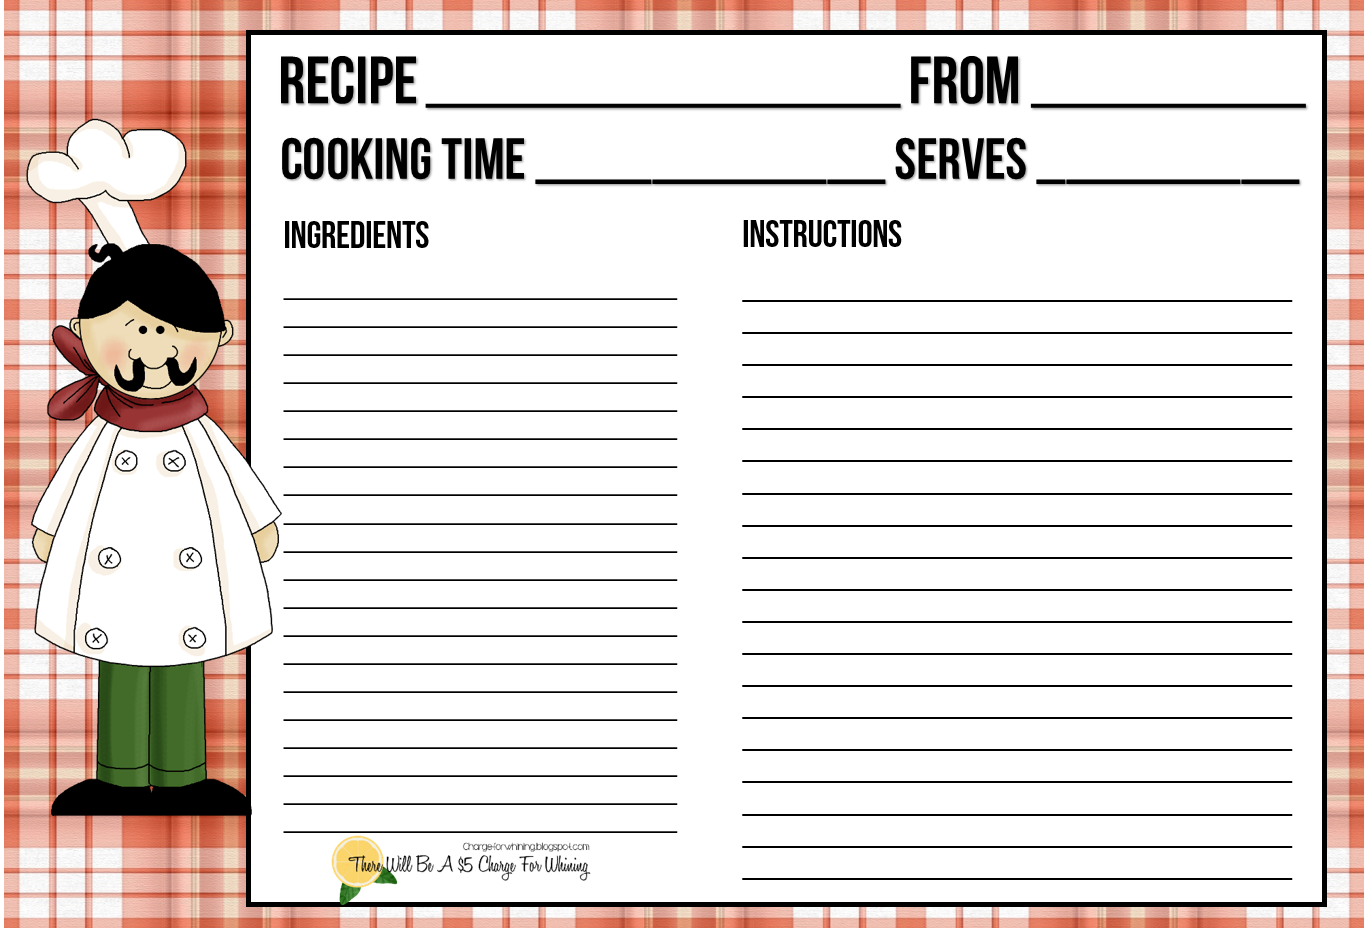 http://www.scribd.com/doc/217113812/Recipe-Card-Chef